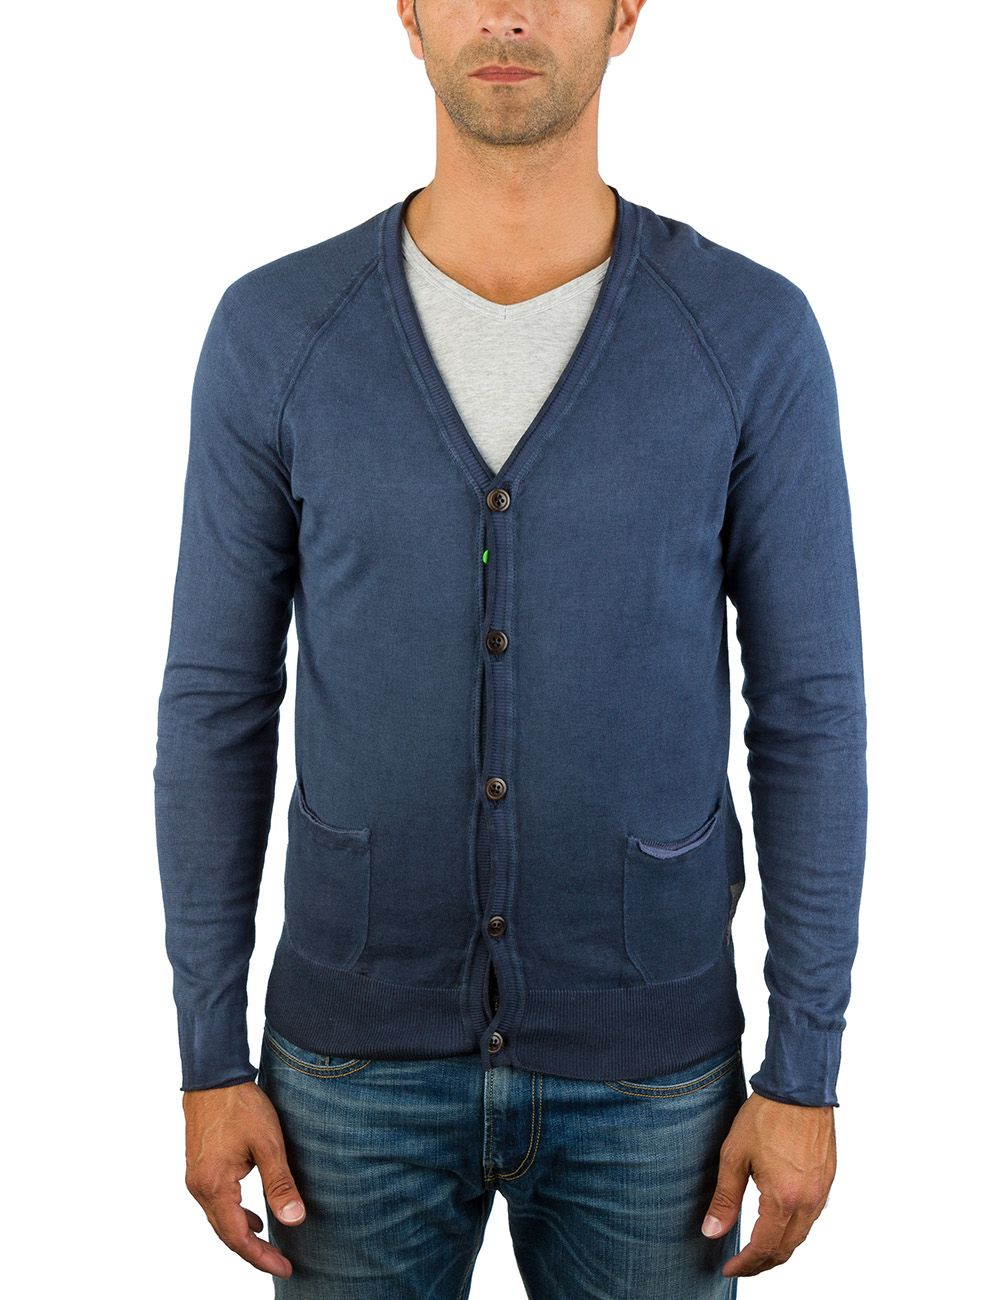 Cotton cardigan with two pockets